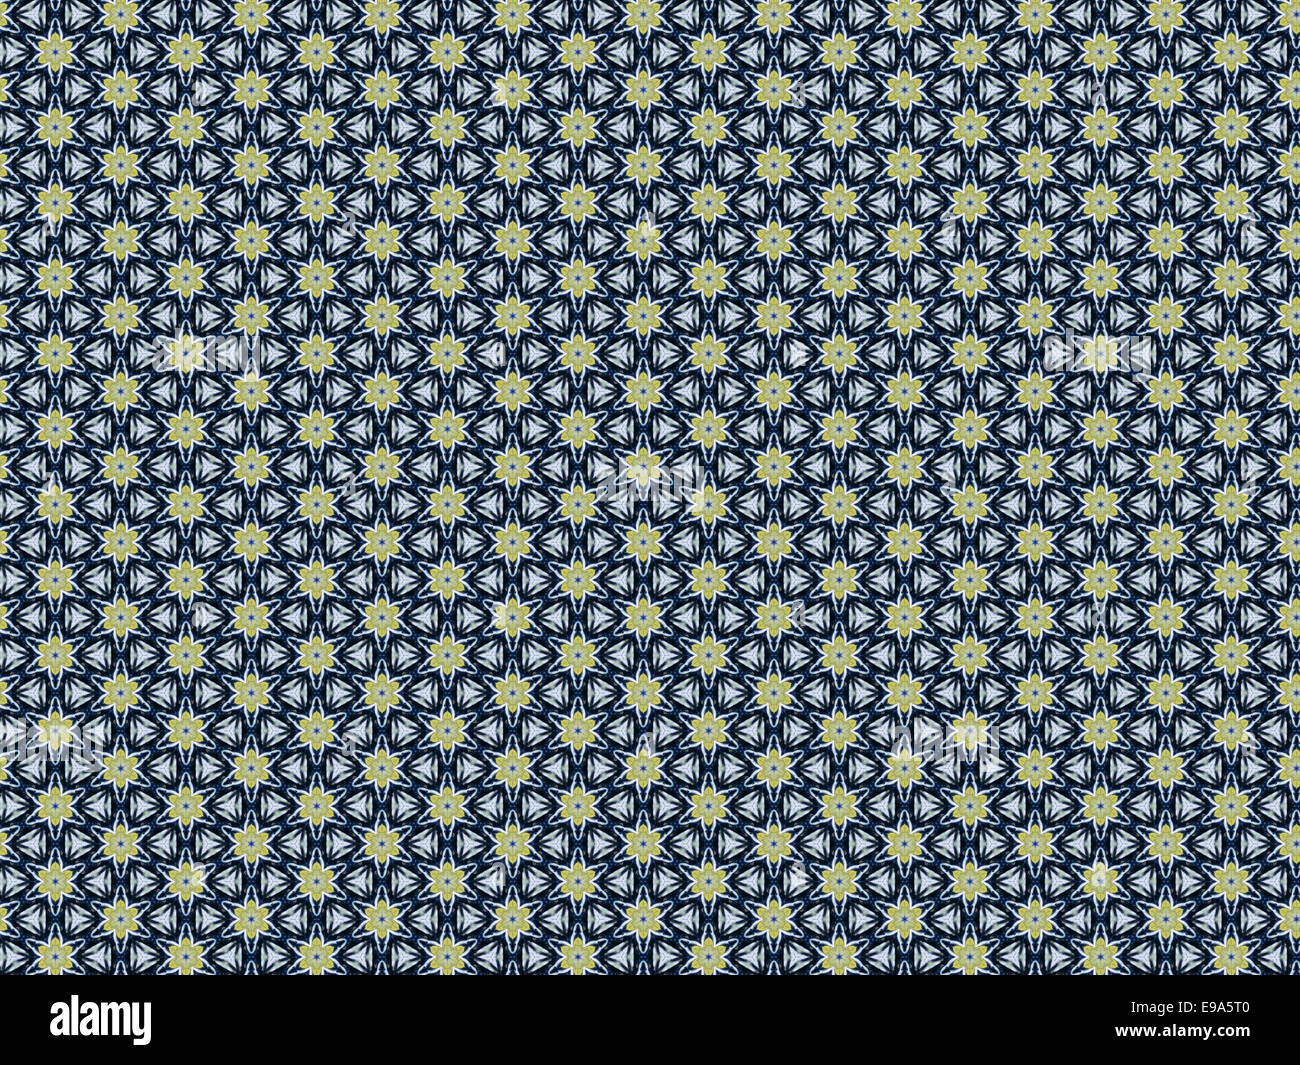 vintage shabby background with classy patterns. Retro Series - Stock Image